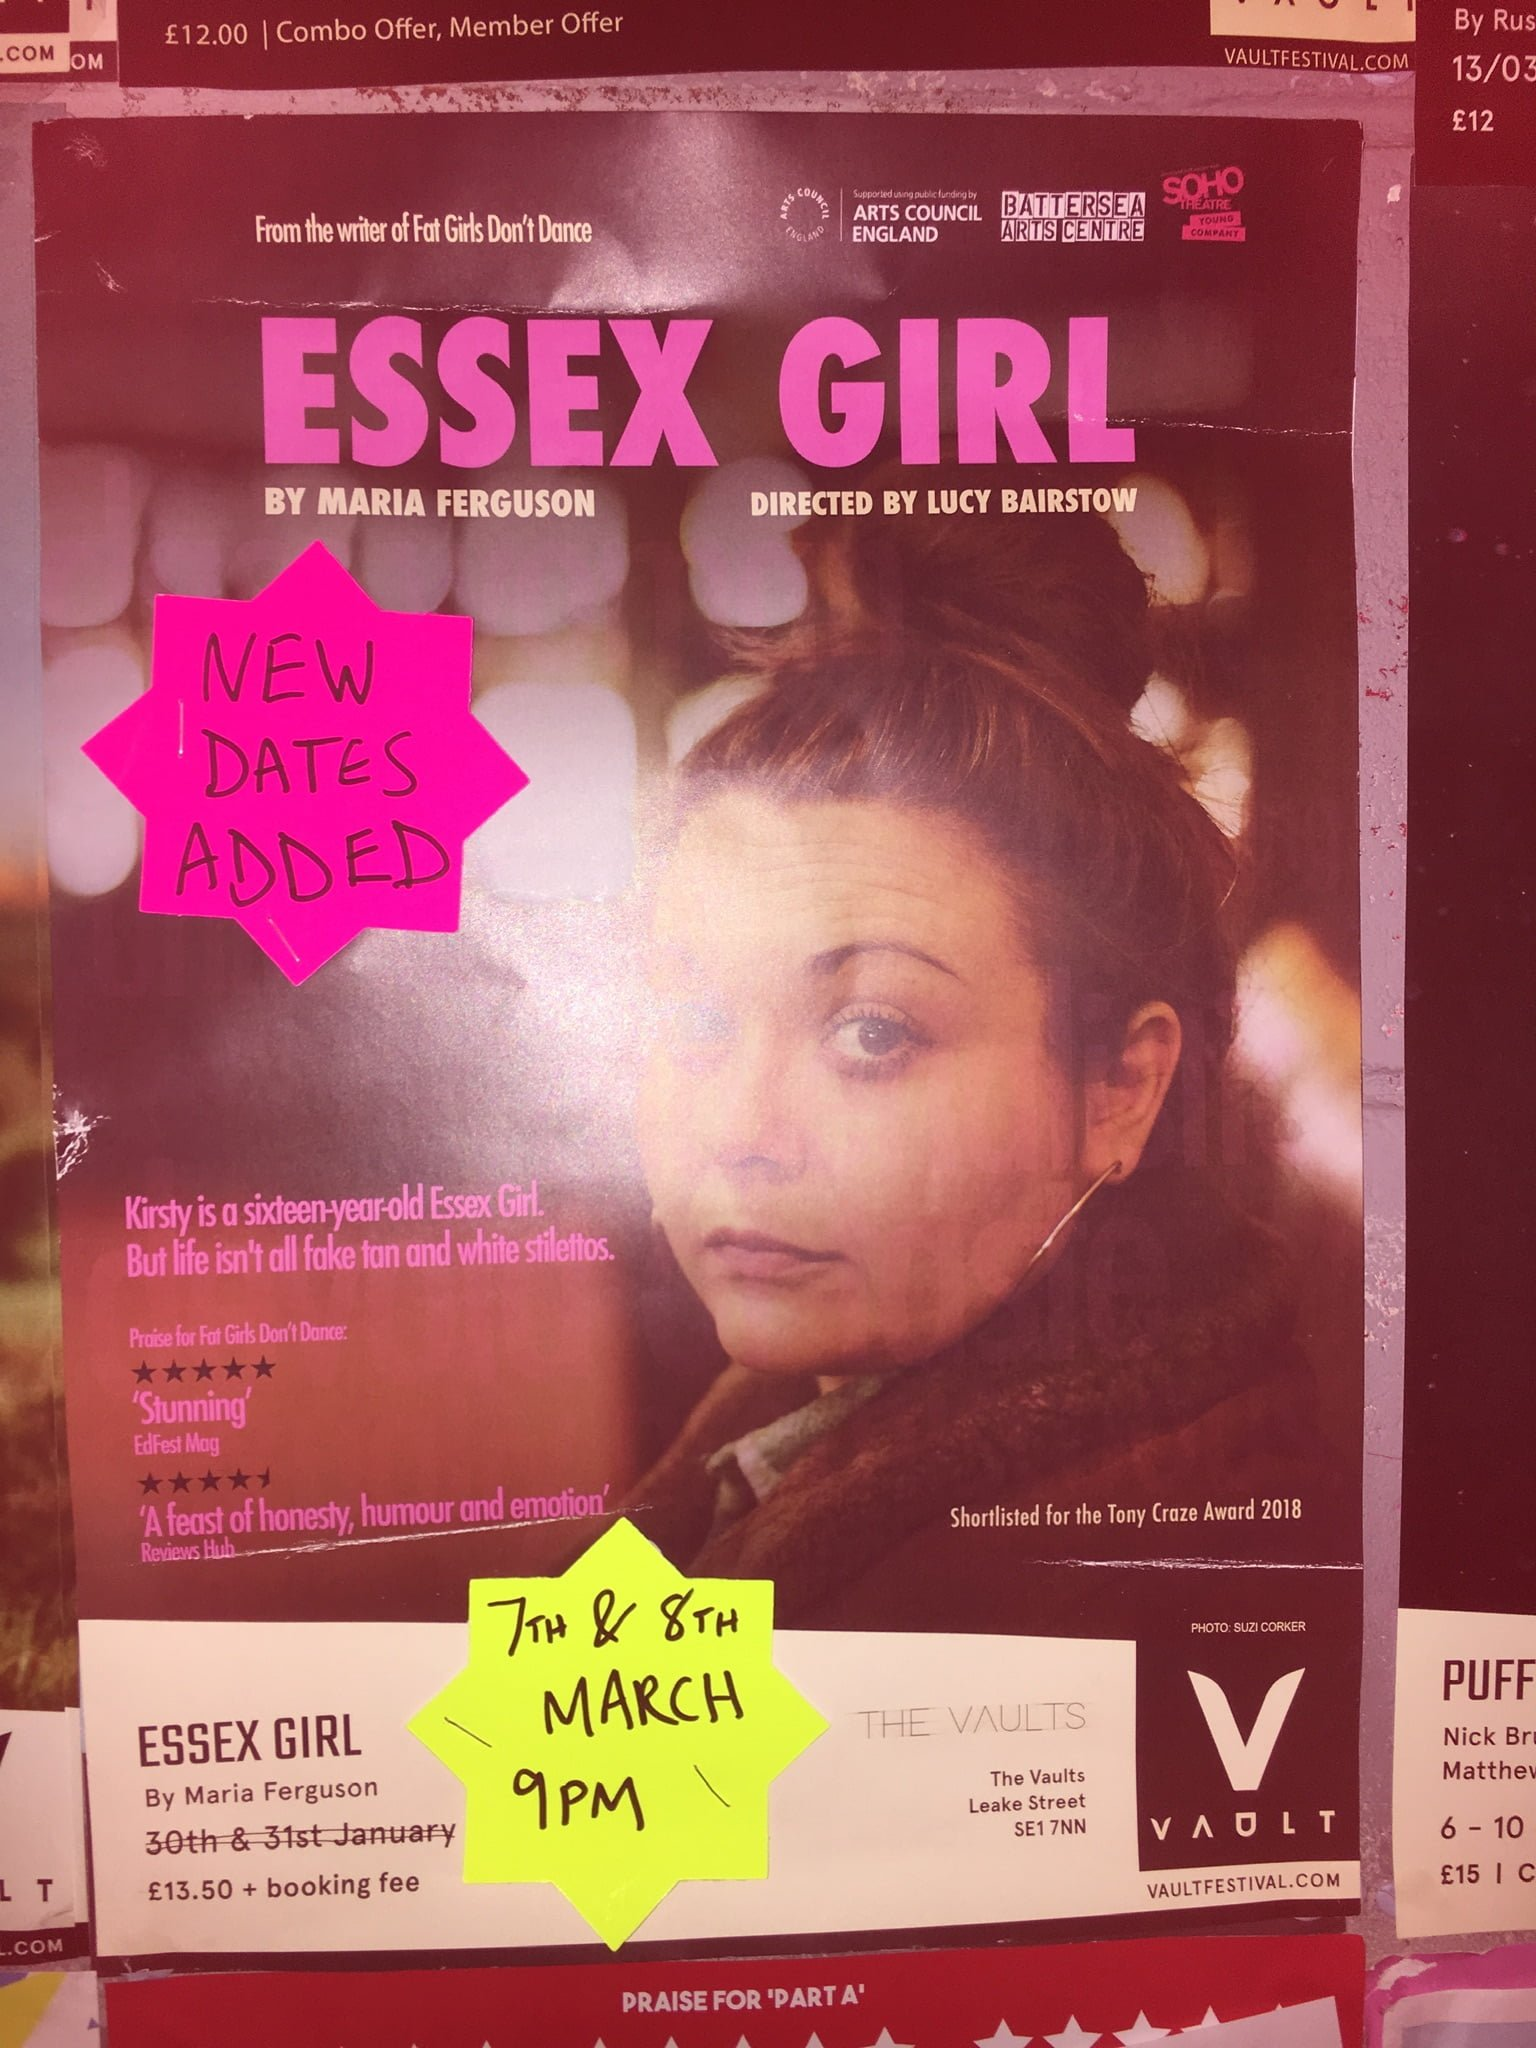 Vault Festival: Go See 'Essex Girl', you won't regret it